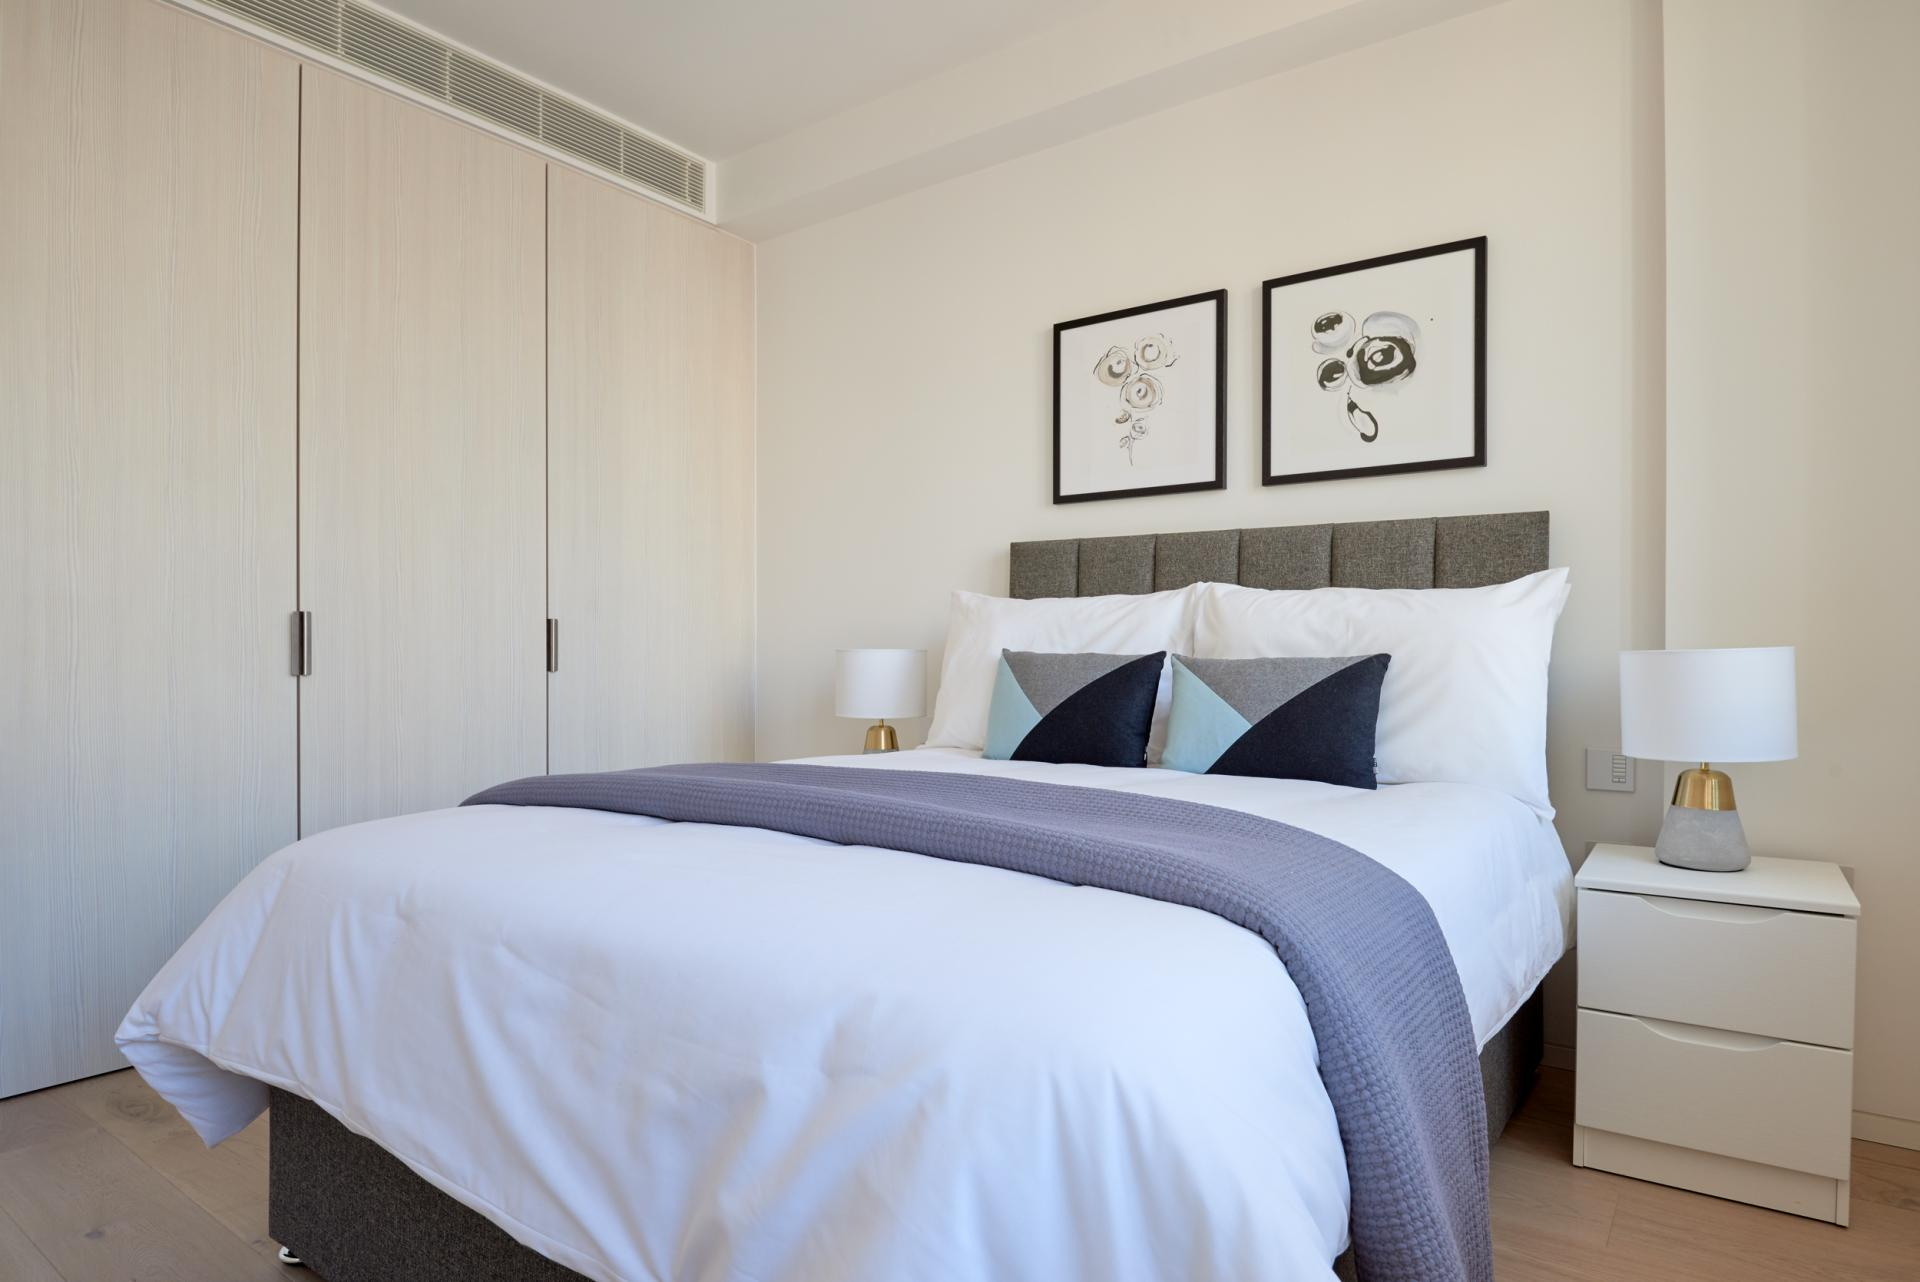 Bedding at Great Portland Street Apartments, Fitzrovia, London - Citybase Apartments